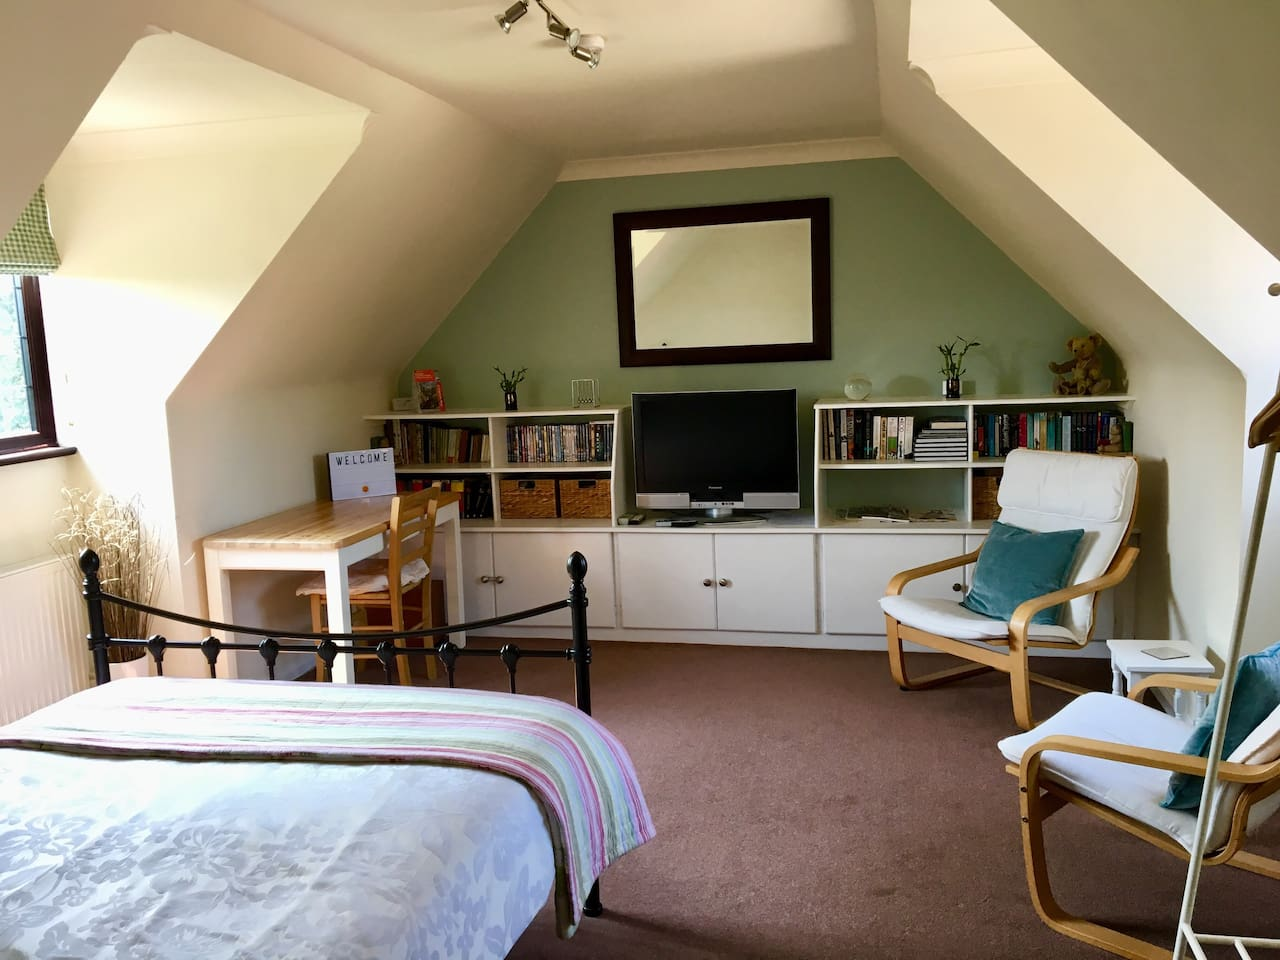 Our spacious double room